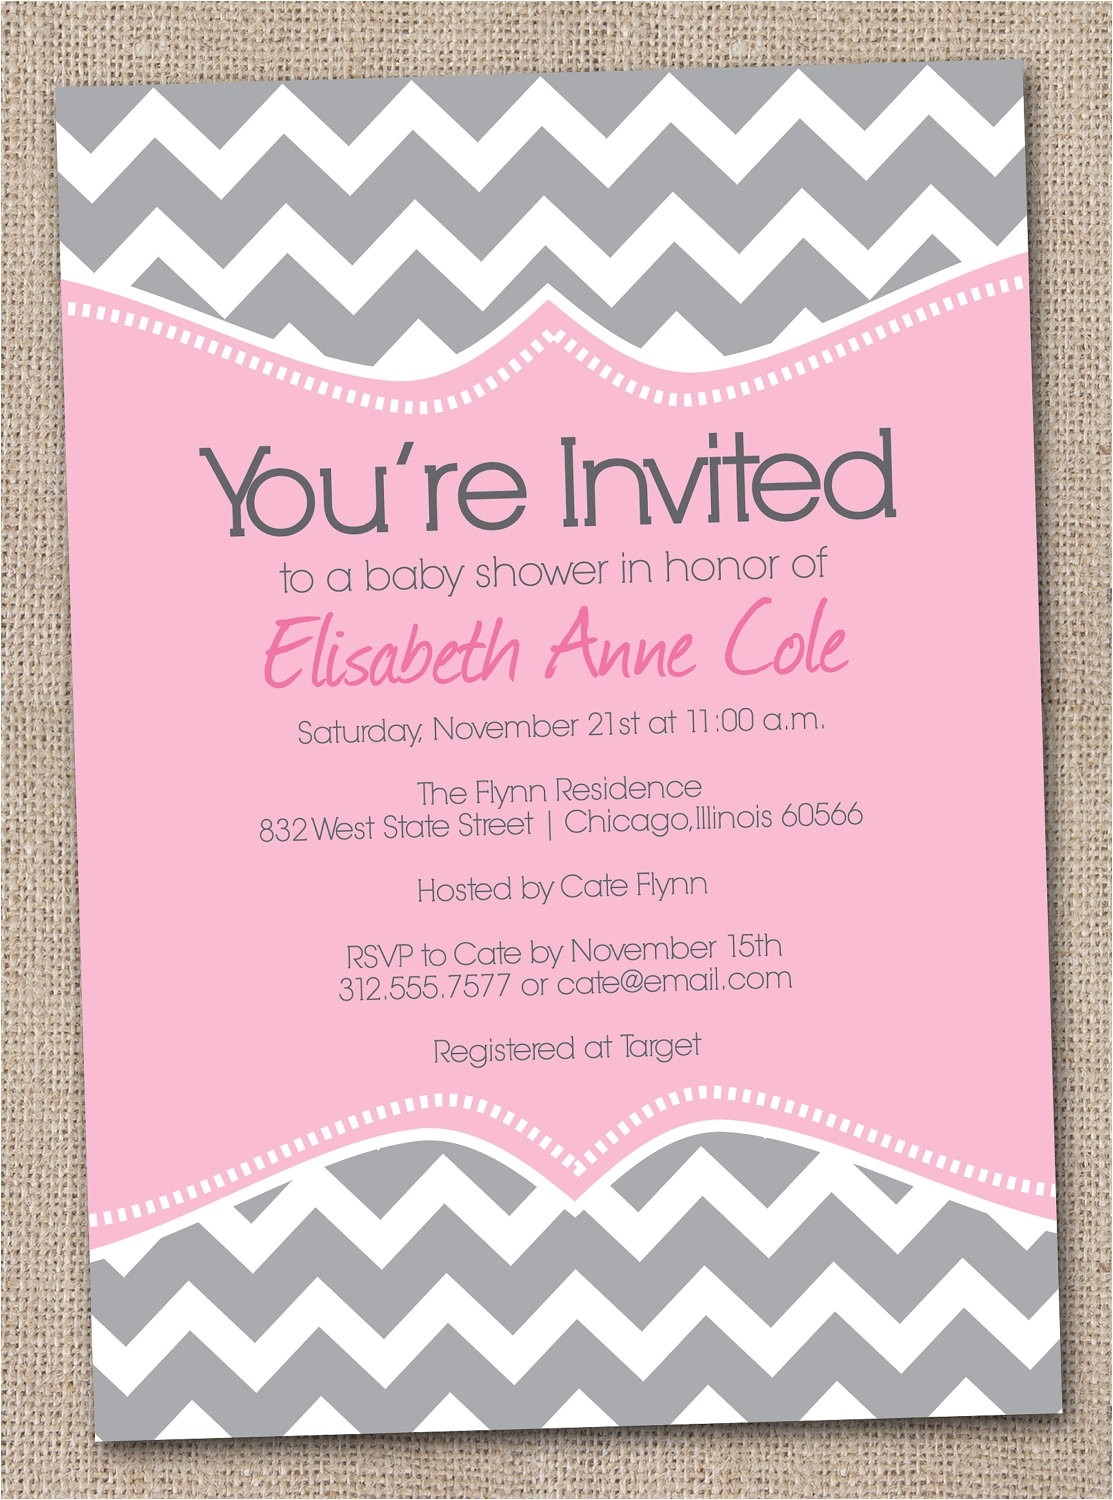 Baby Shower Video Invitation Maker Free Baby Shower Invitation Maker